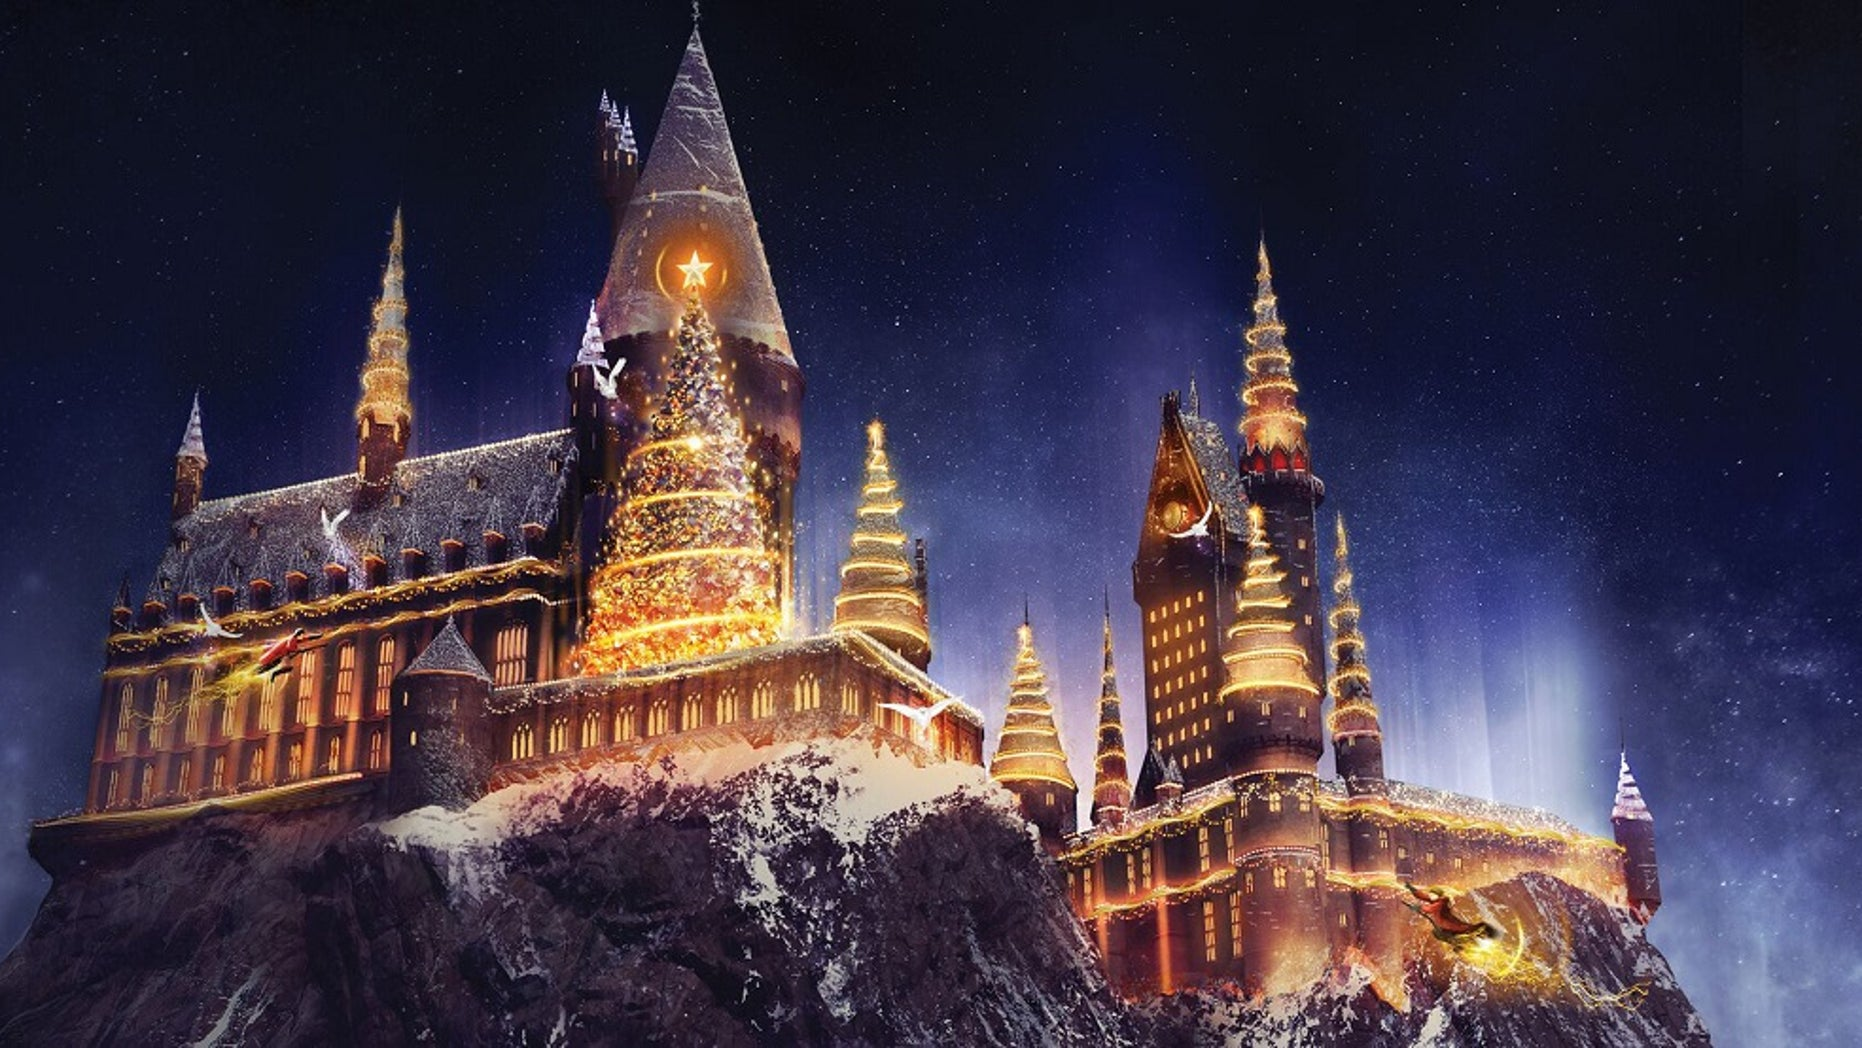 A new Christmas experience is coming to The Wizarding World of Harry Potter at Universal Orlando Resort this winter.